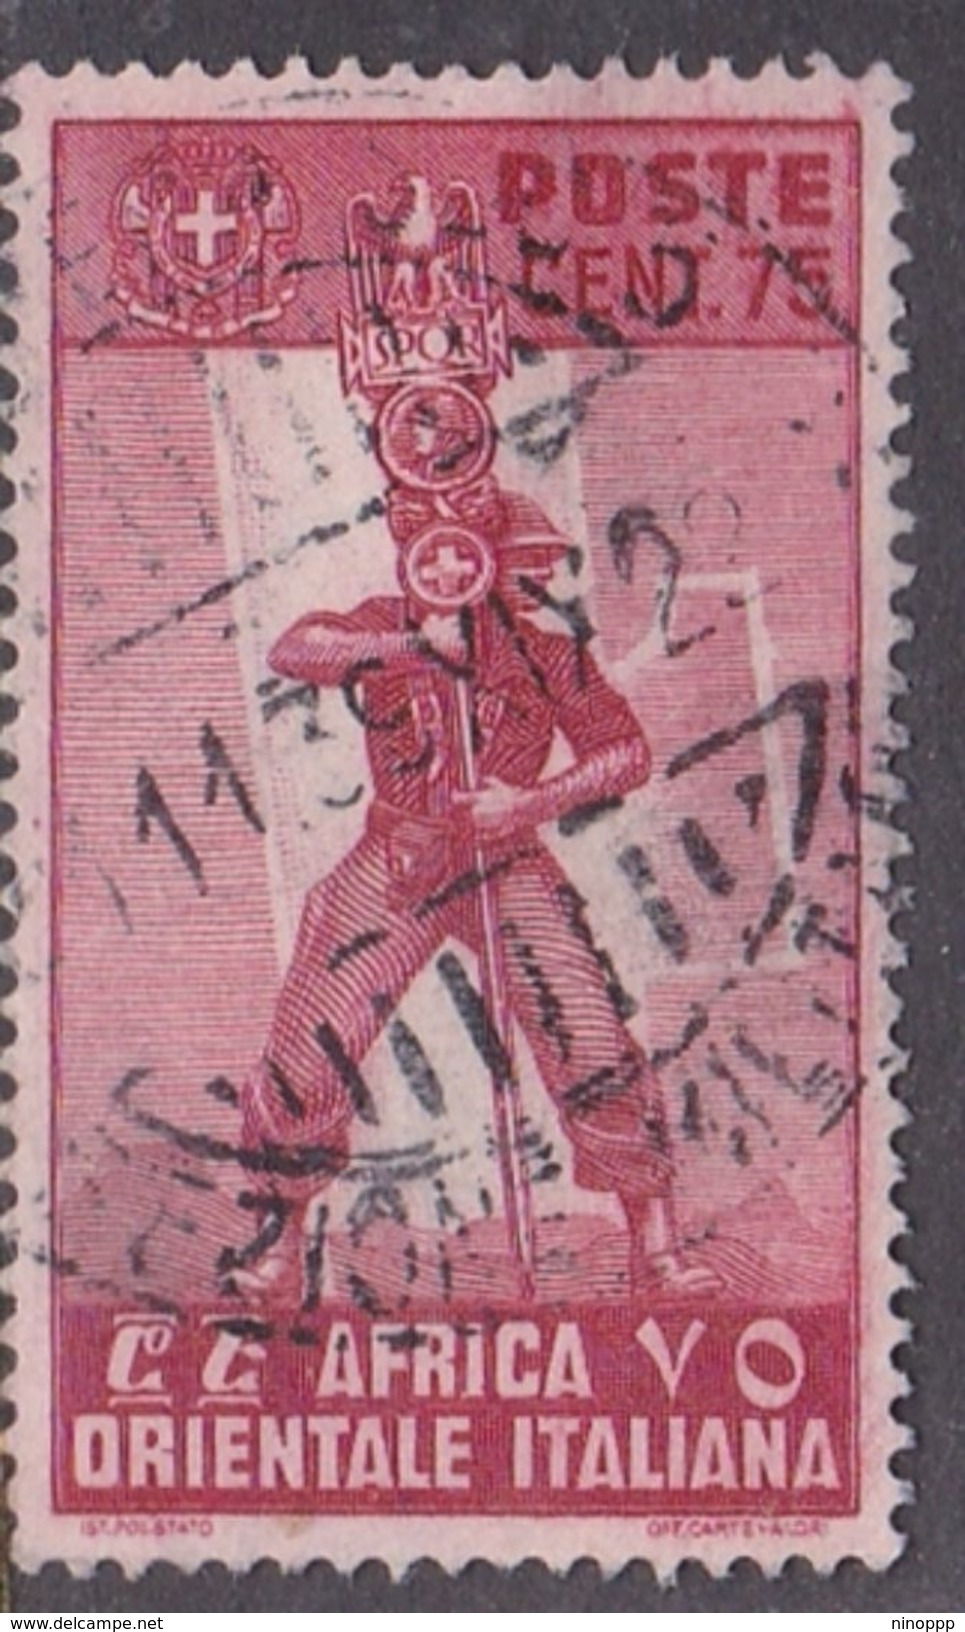 Italy-Colonies And Territories-Italian Eastern Africa S11 1938 75c Carmine Used - Italy